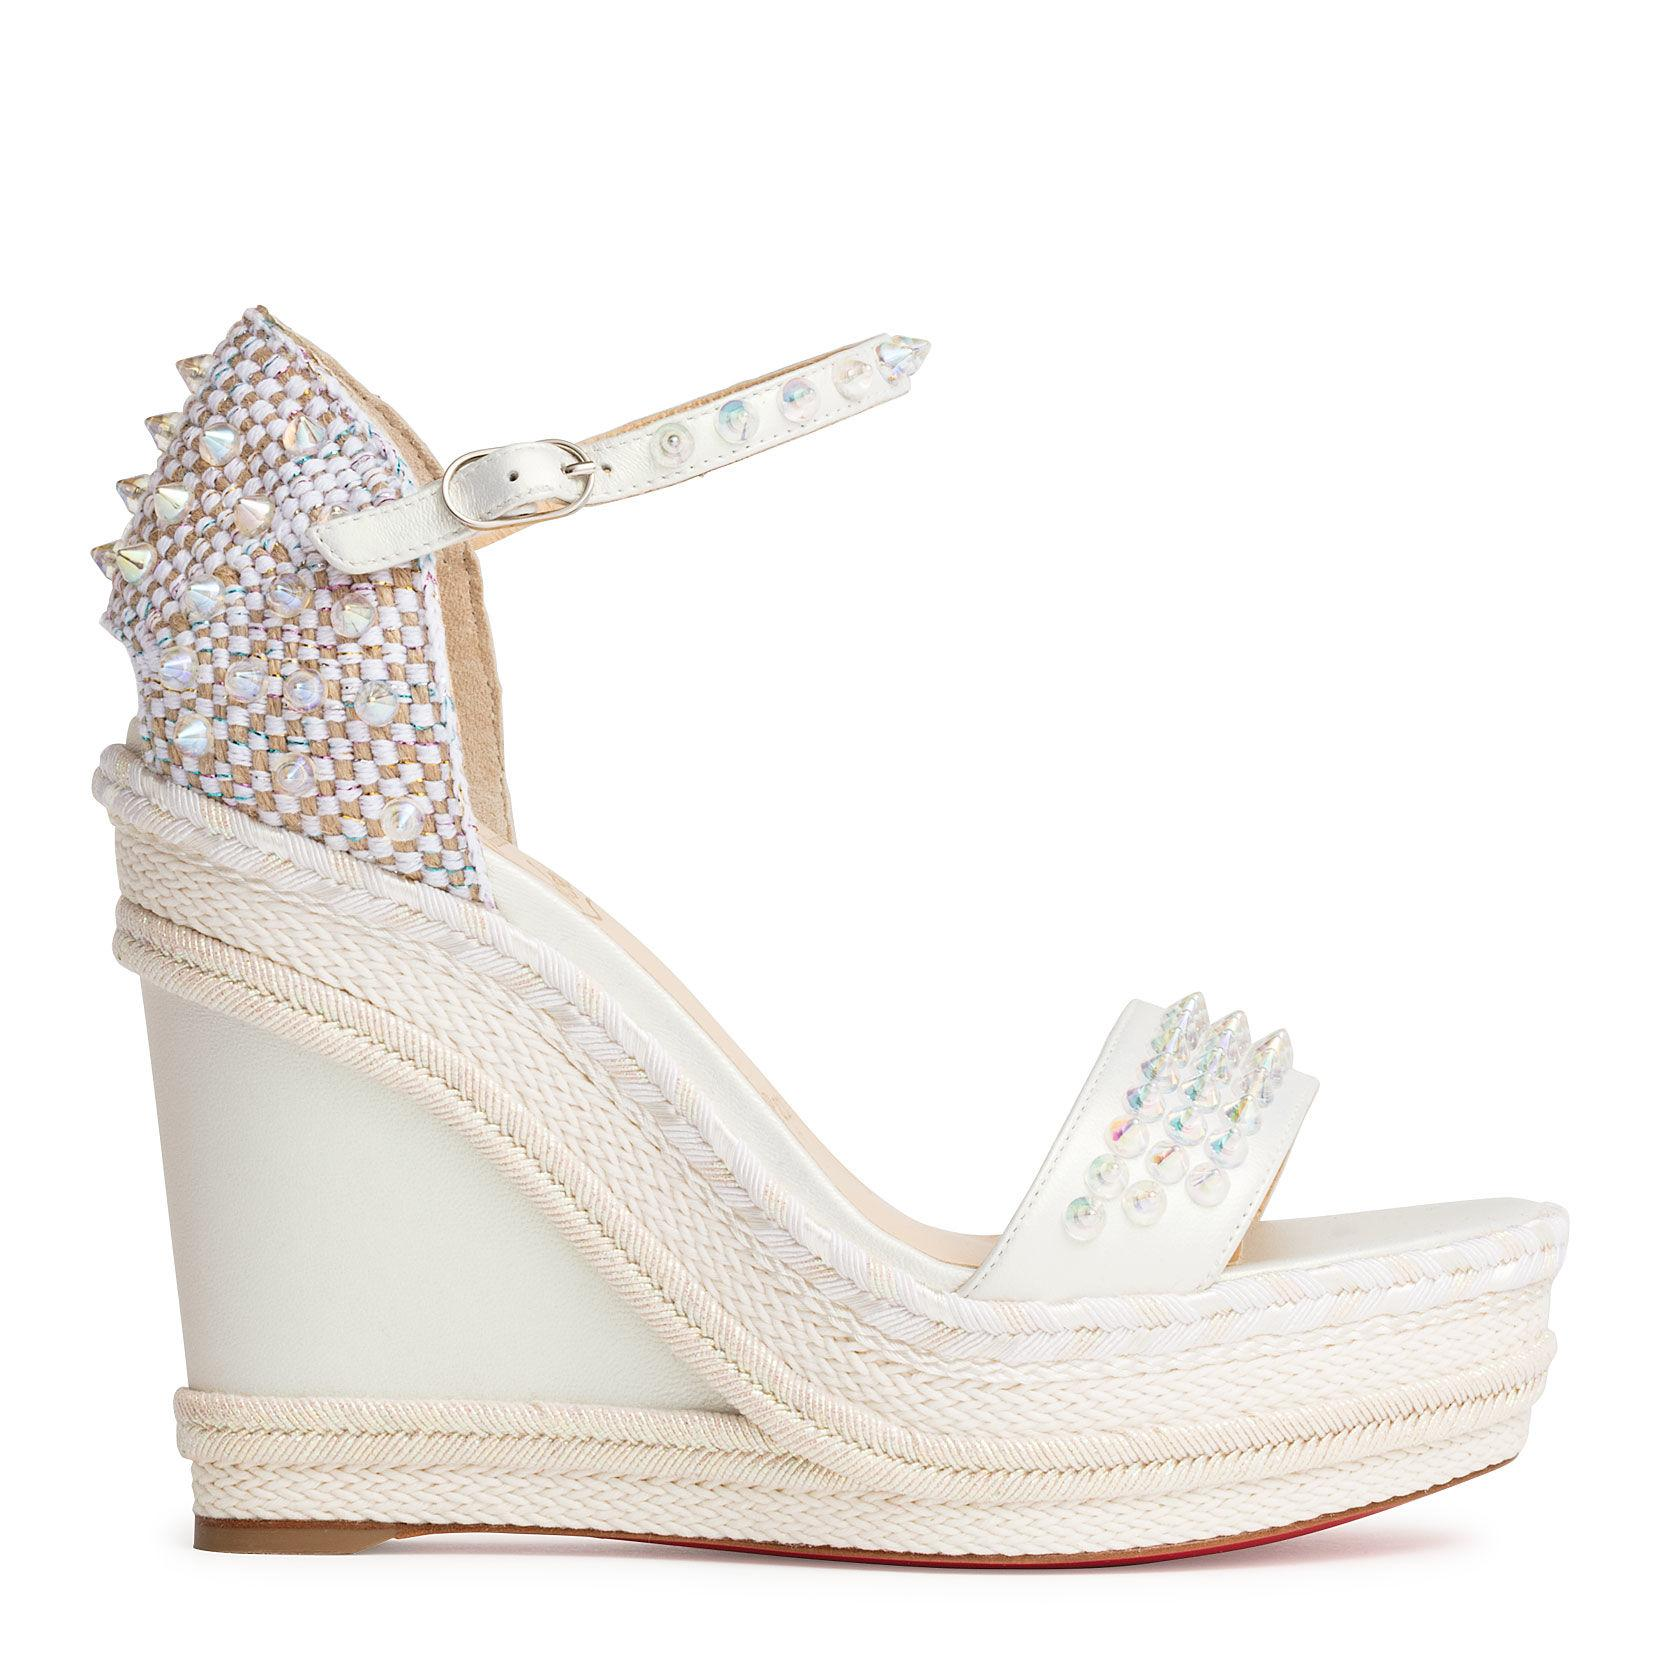 2103bb4632 ... Christian Louboutin - Madmonica 120 White Leather Wedges - Lyst. Visit  Savannahs. Tap to visit site